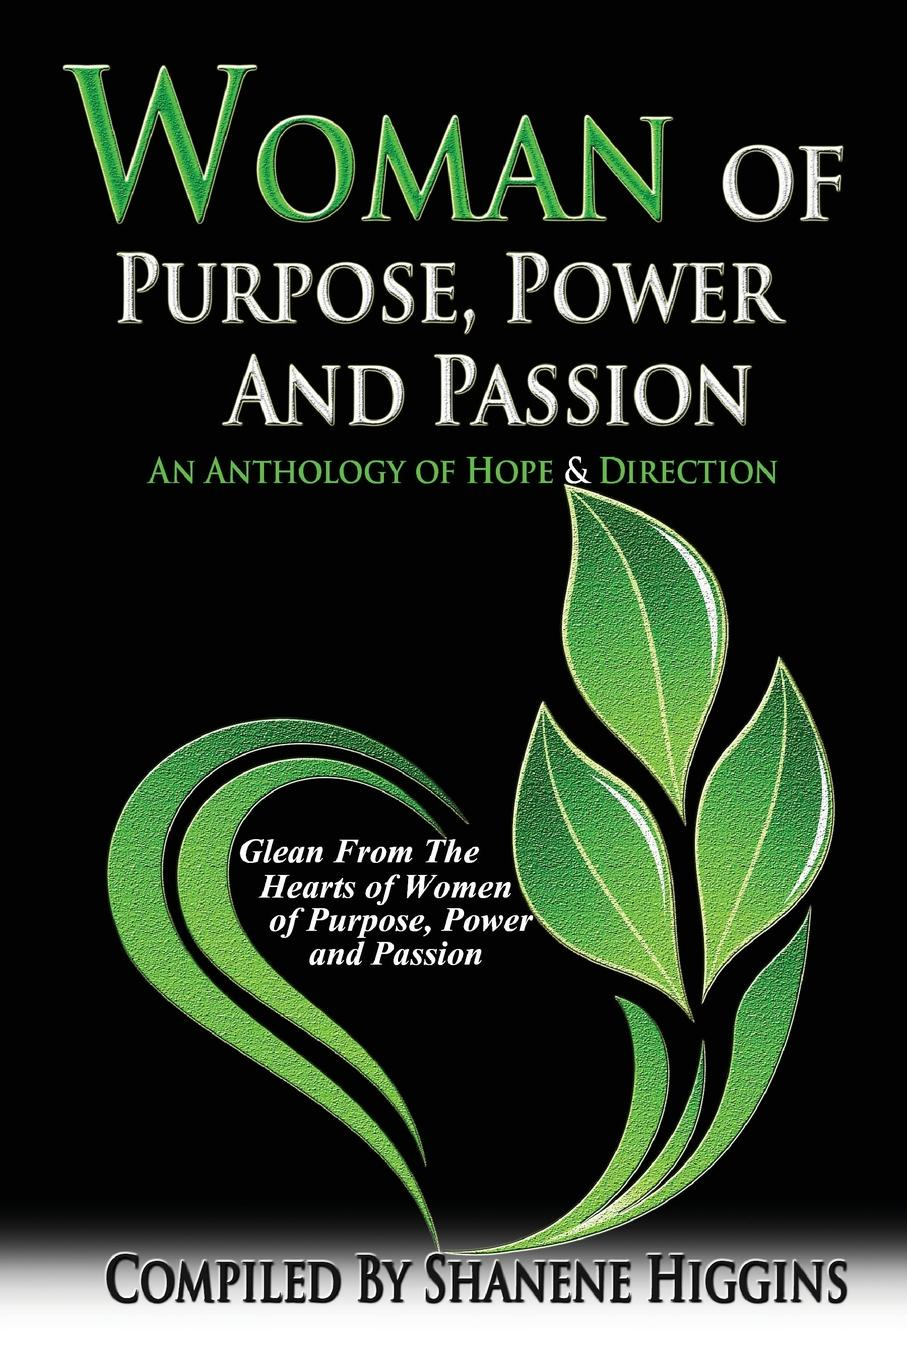 Shanene L. Higgins Woman of Purpose, Power and Passion. An Anthology of Hope & Direction klaus stieglitz sabine pamperrien oil power and a sign of hope